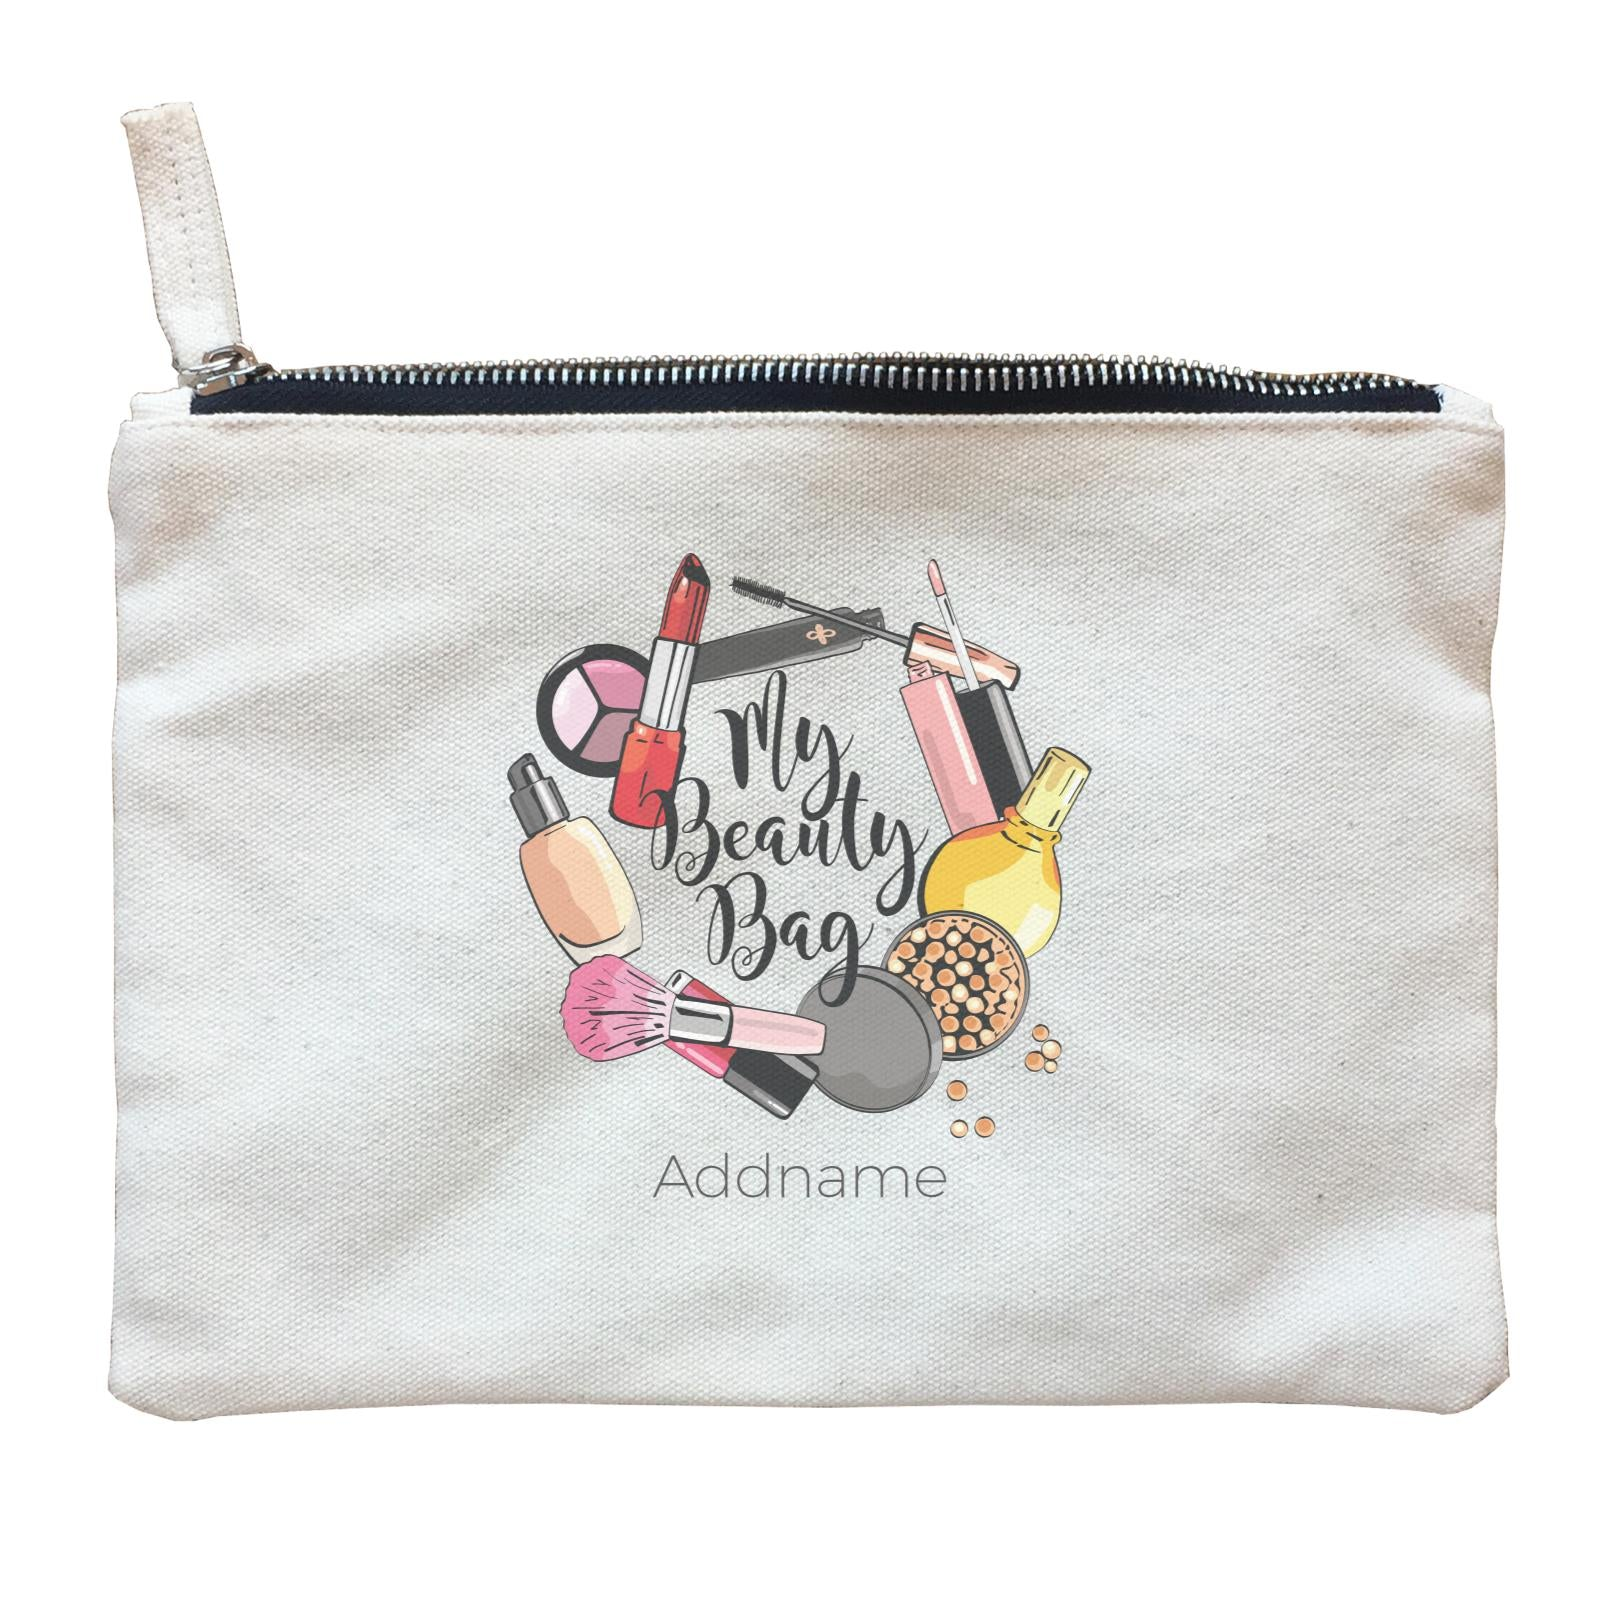 Make Up Quotes Make My Beauty Bag Addname Zipper Pouch